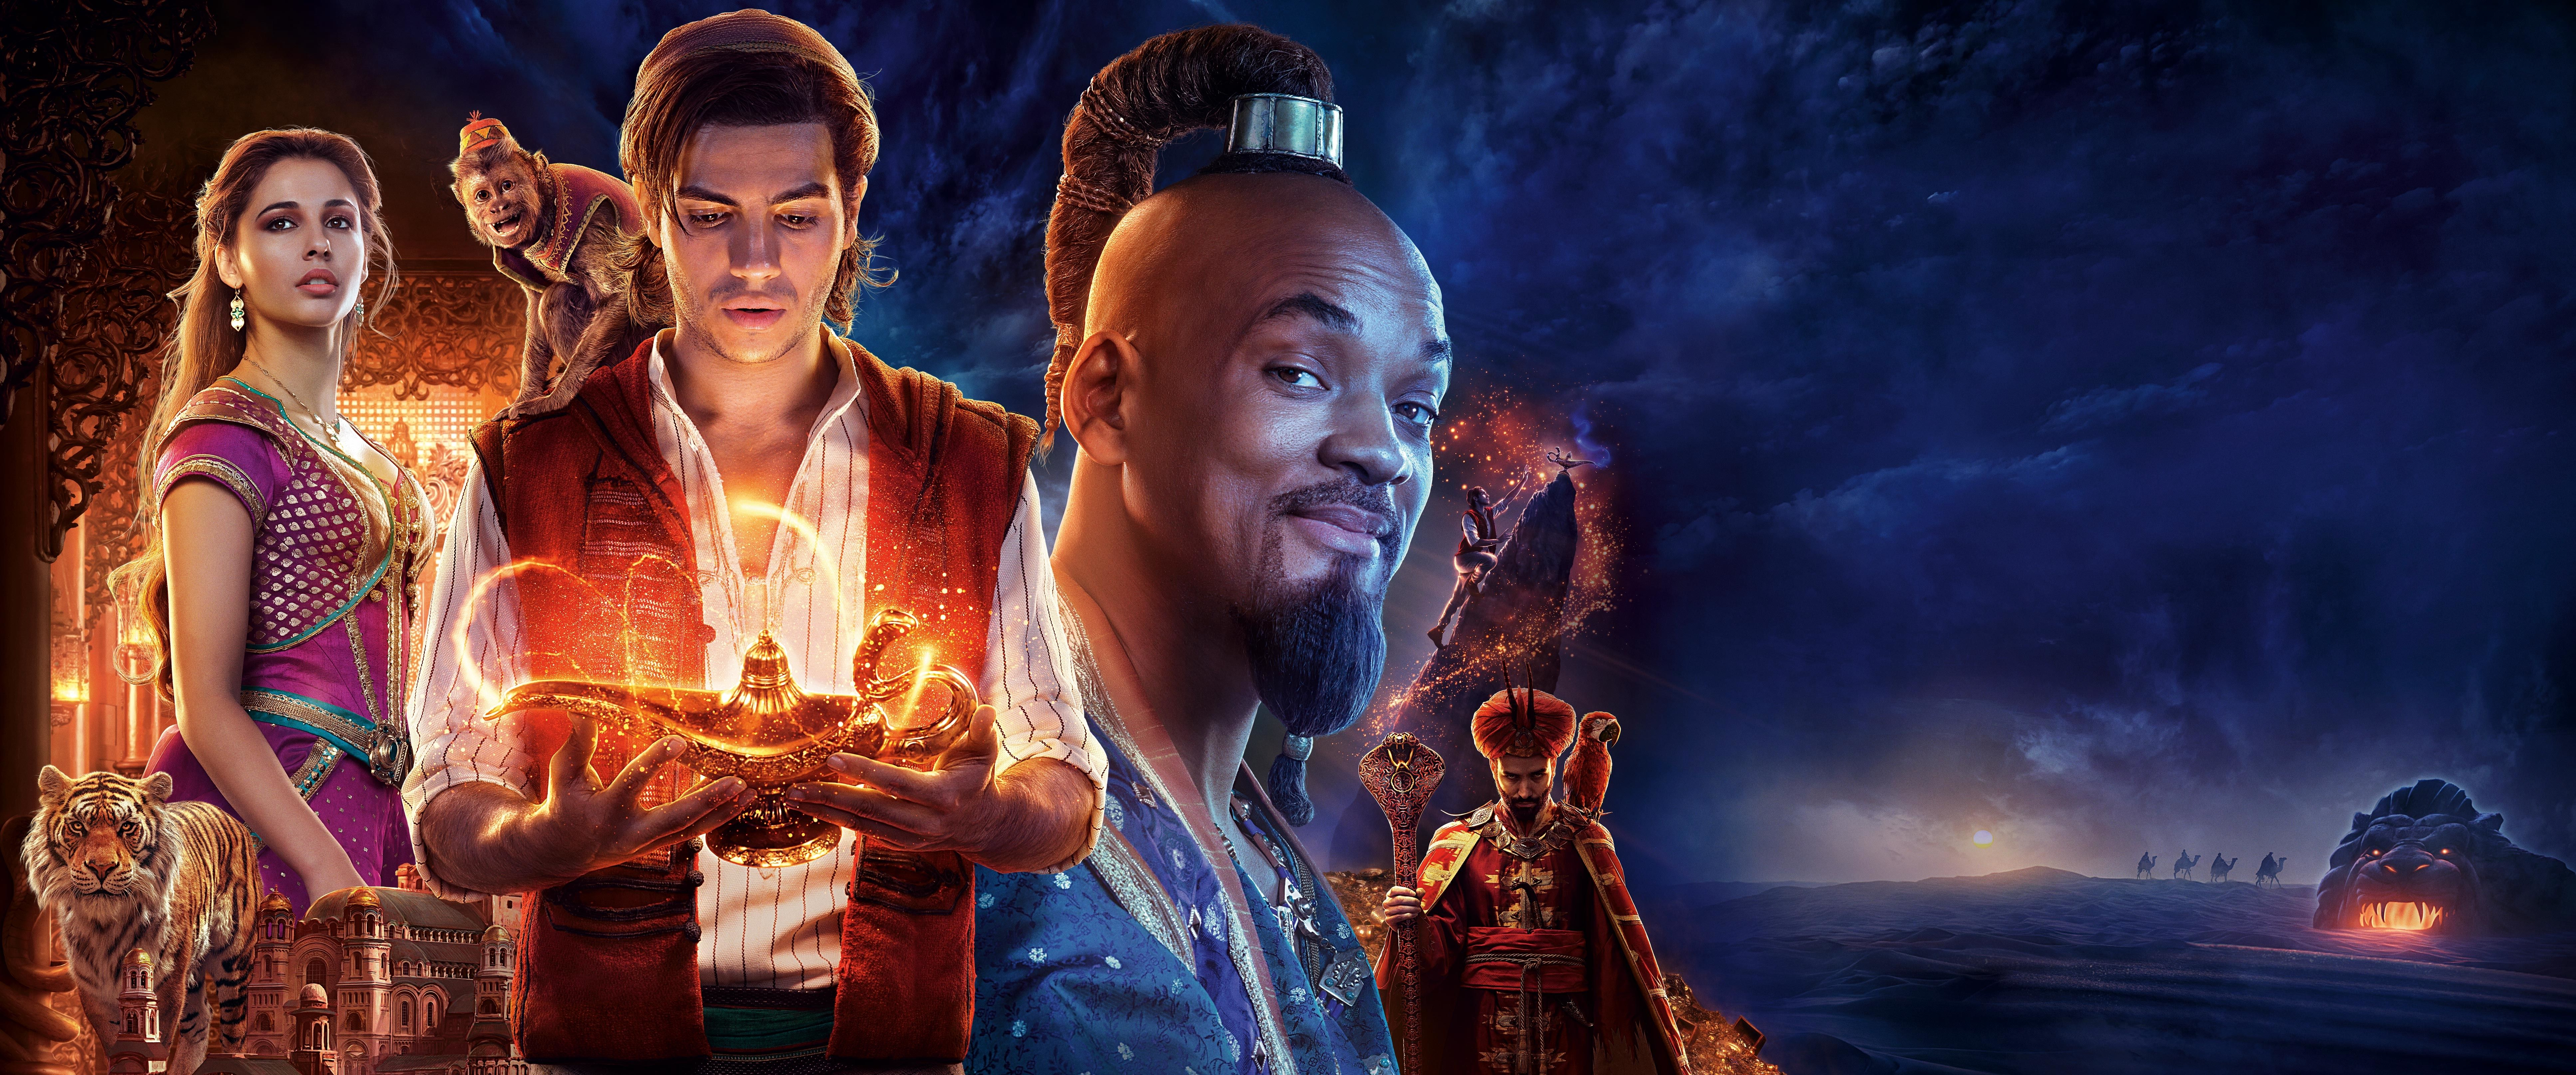 Aladdin Movie 2019 Wallpaper Hd Movies 4k Wallpapers Best Representation Descriptions Related Searches Aladdin Movie Mermaid Movies Little Mermaid Movies